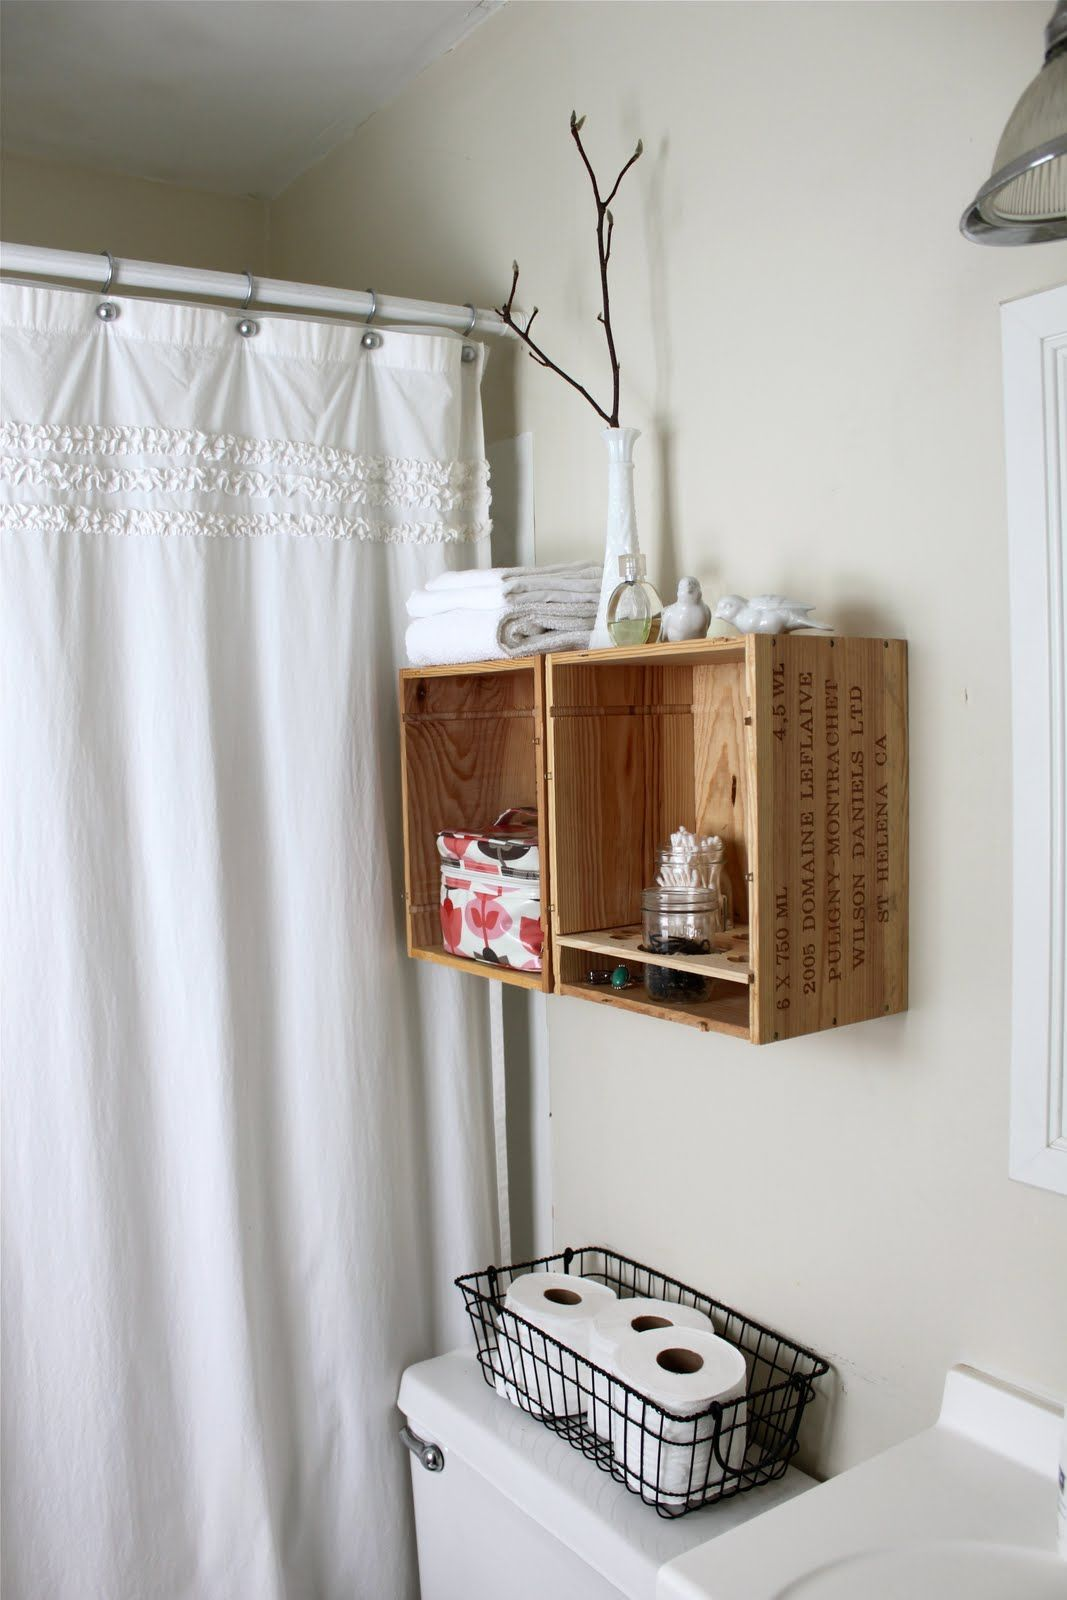 How to Go for the Ideal Shabby Chic Bathroom Accessories Used for Storage